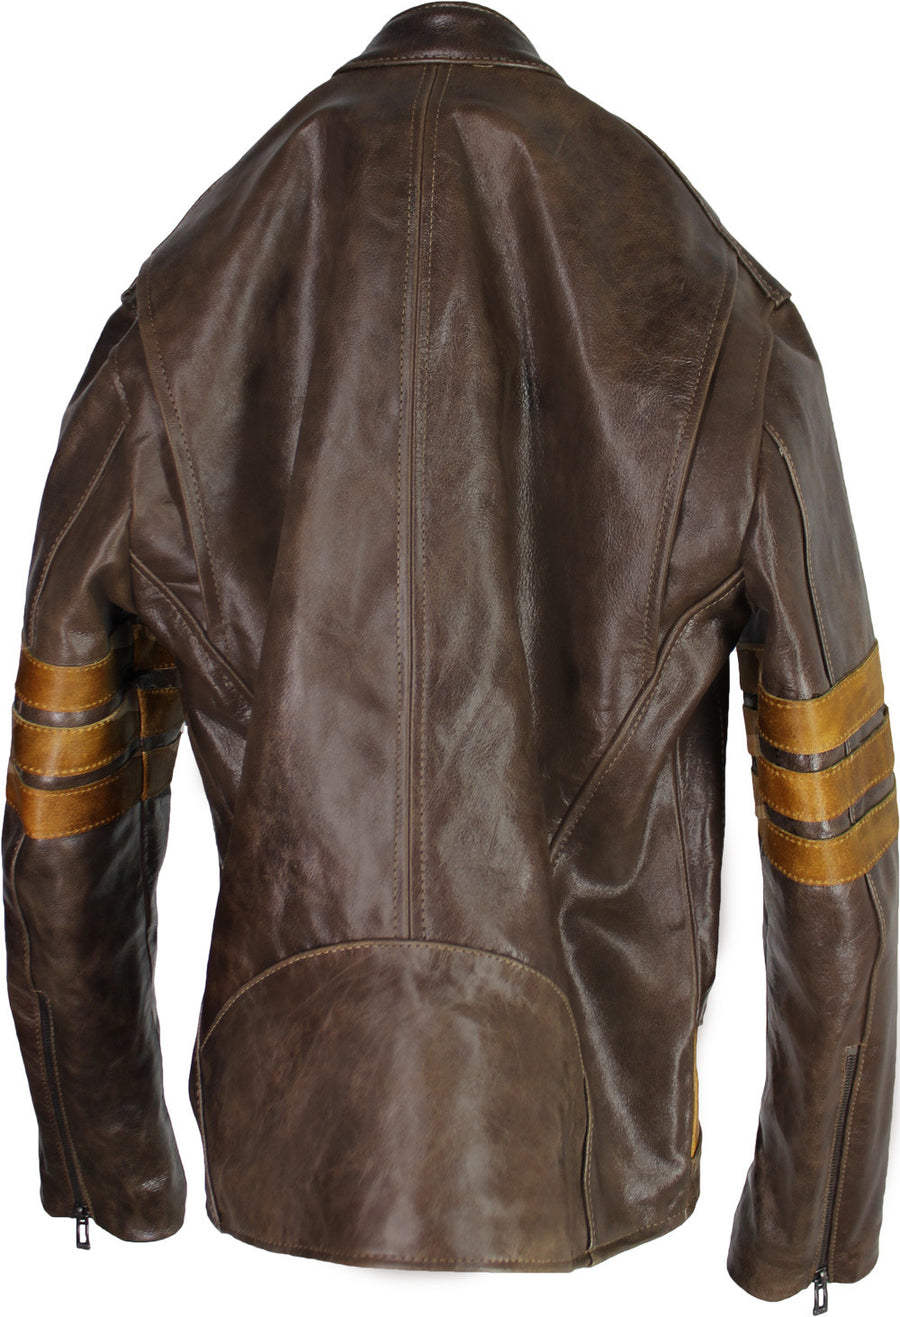 LOGAN Leather Jacket Distressed Brown - 1st Edition - PDCollection Leatherwear - Online Shop